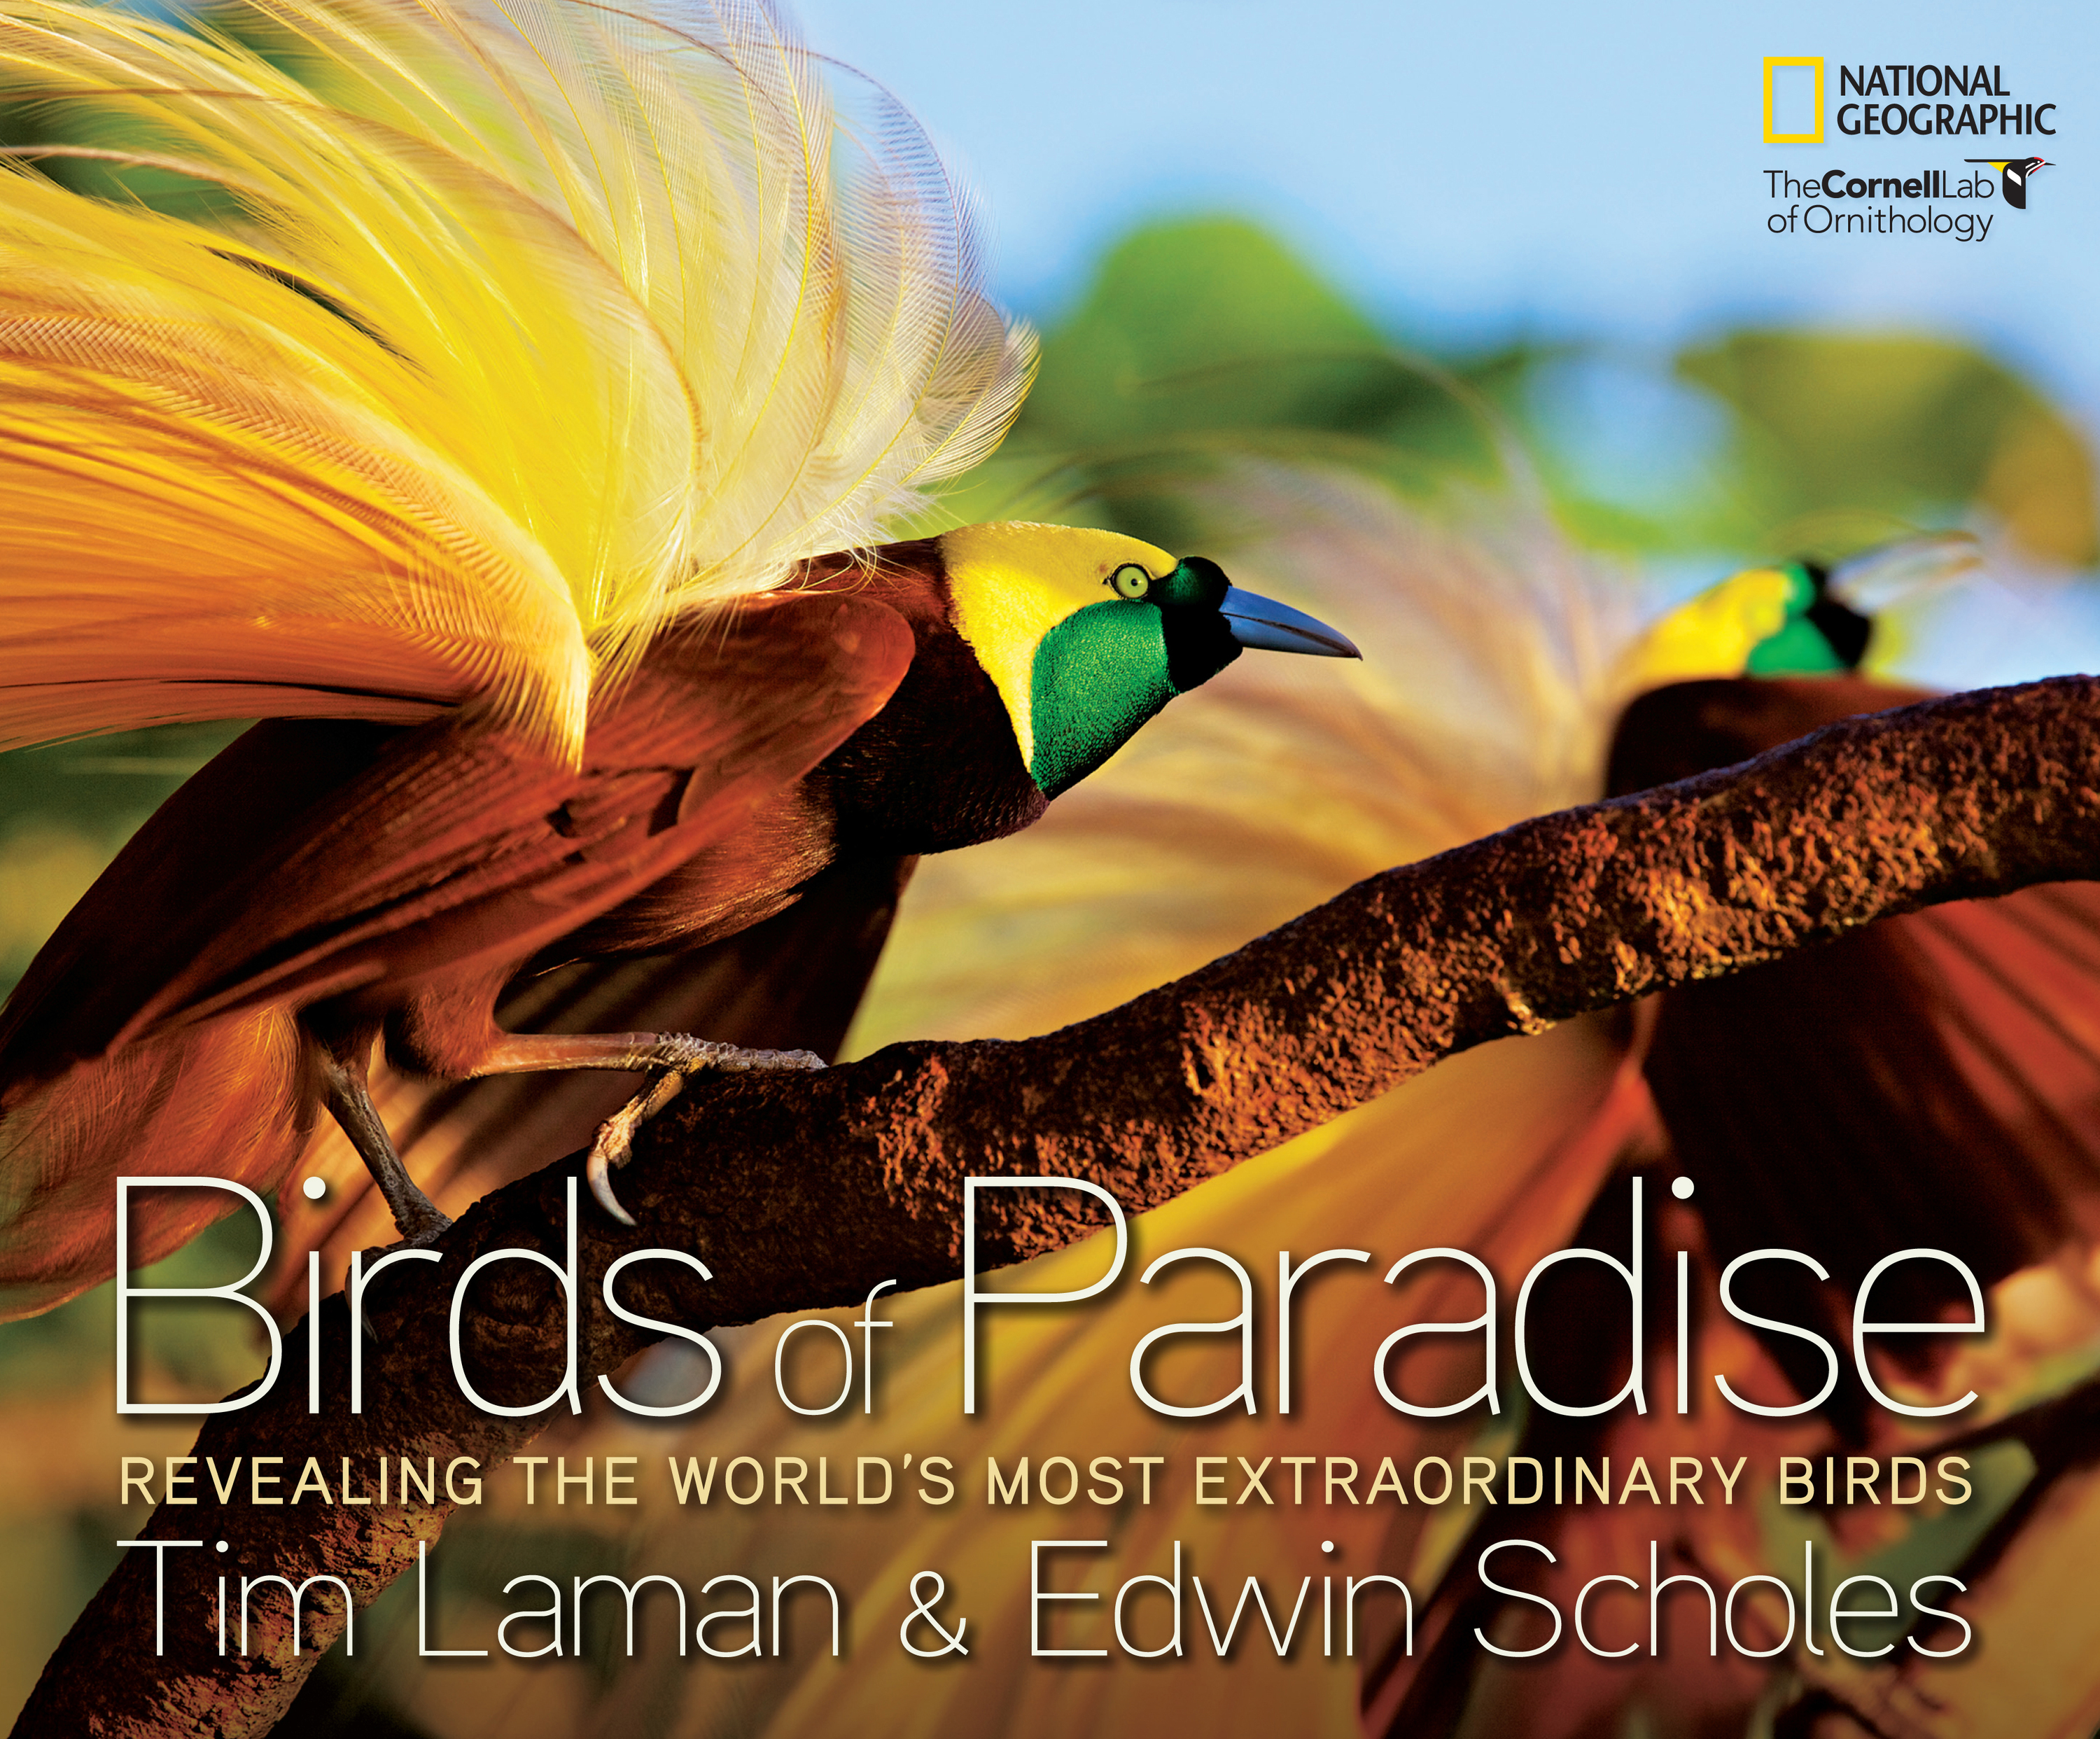 Birds of paradise book cover rzqucn